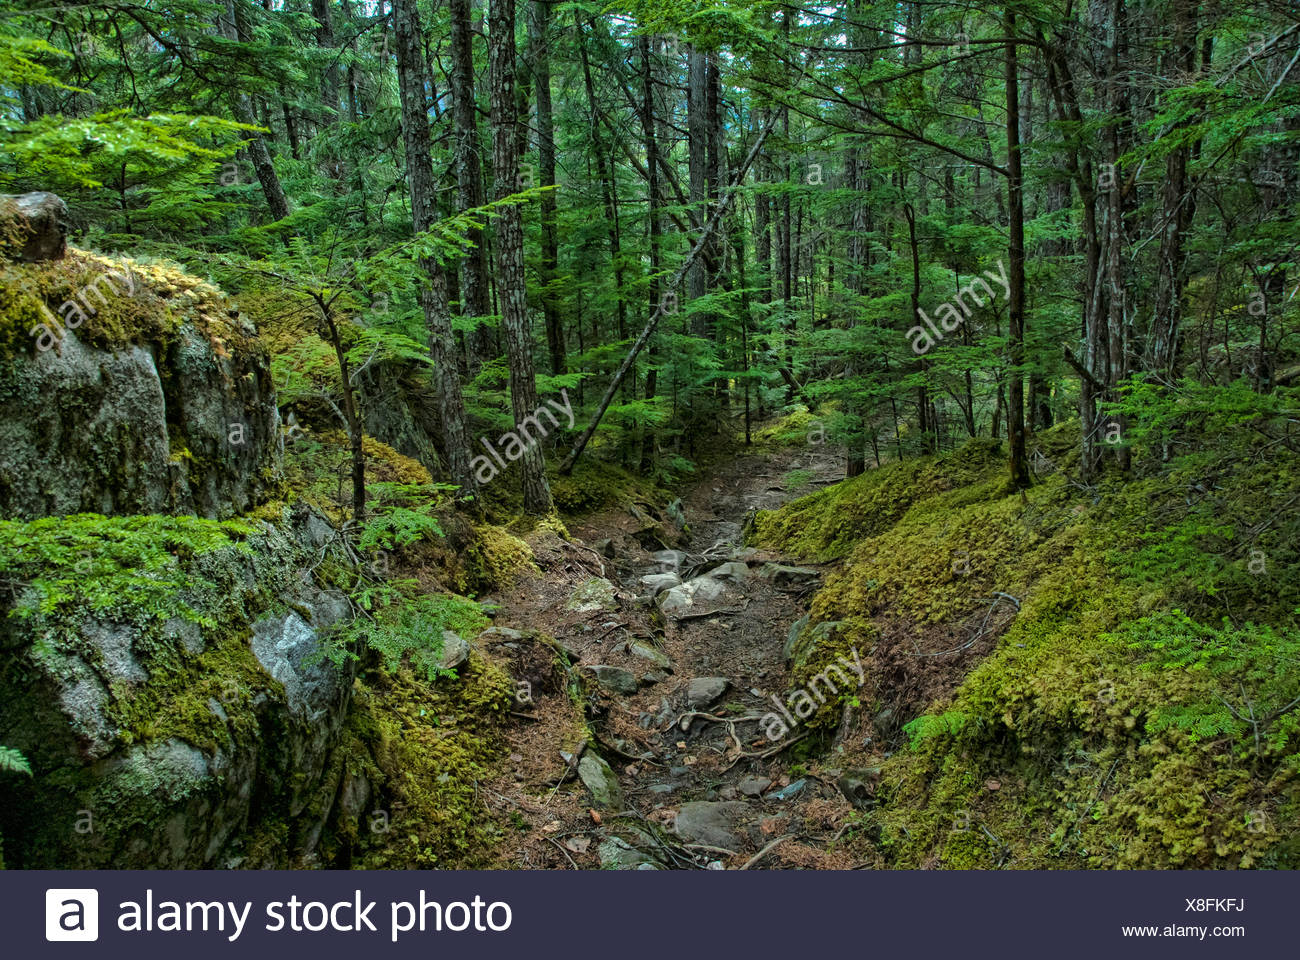 chilkoot trail, national, historic, site, skagway, Alaska, USA, United States, America, forest - Stock Image